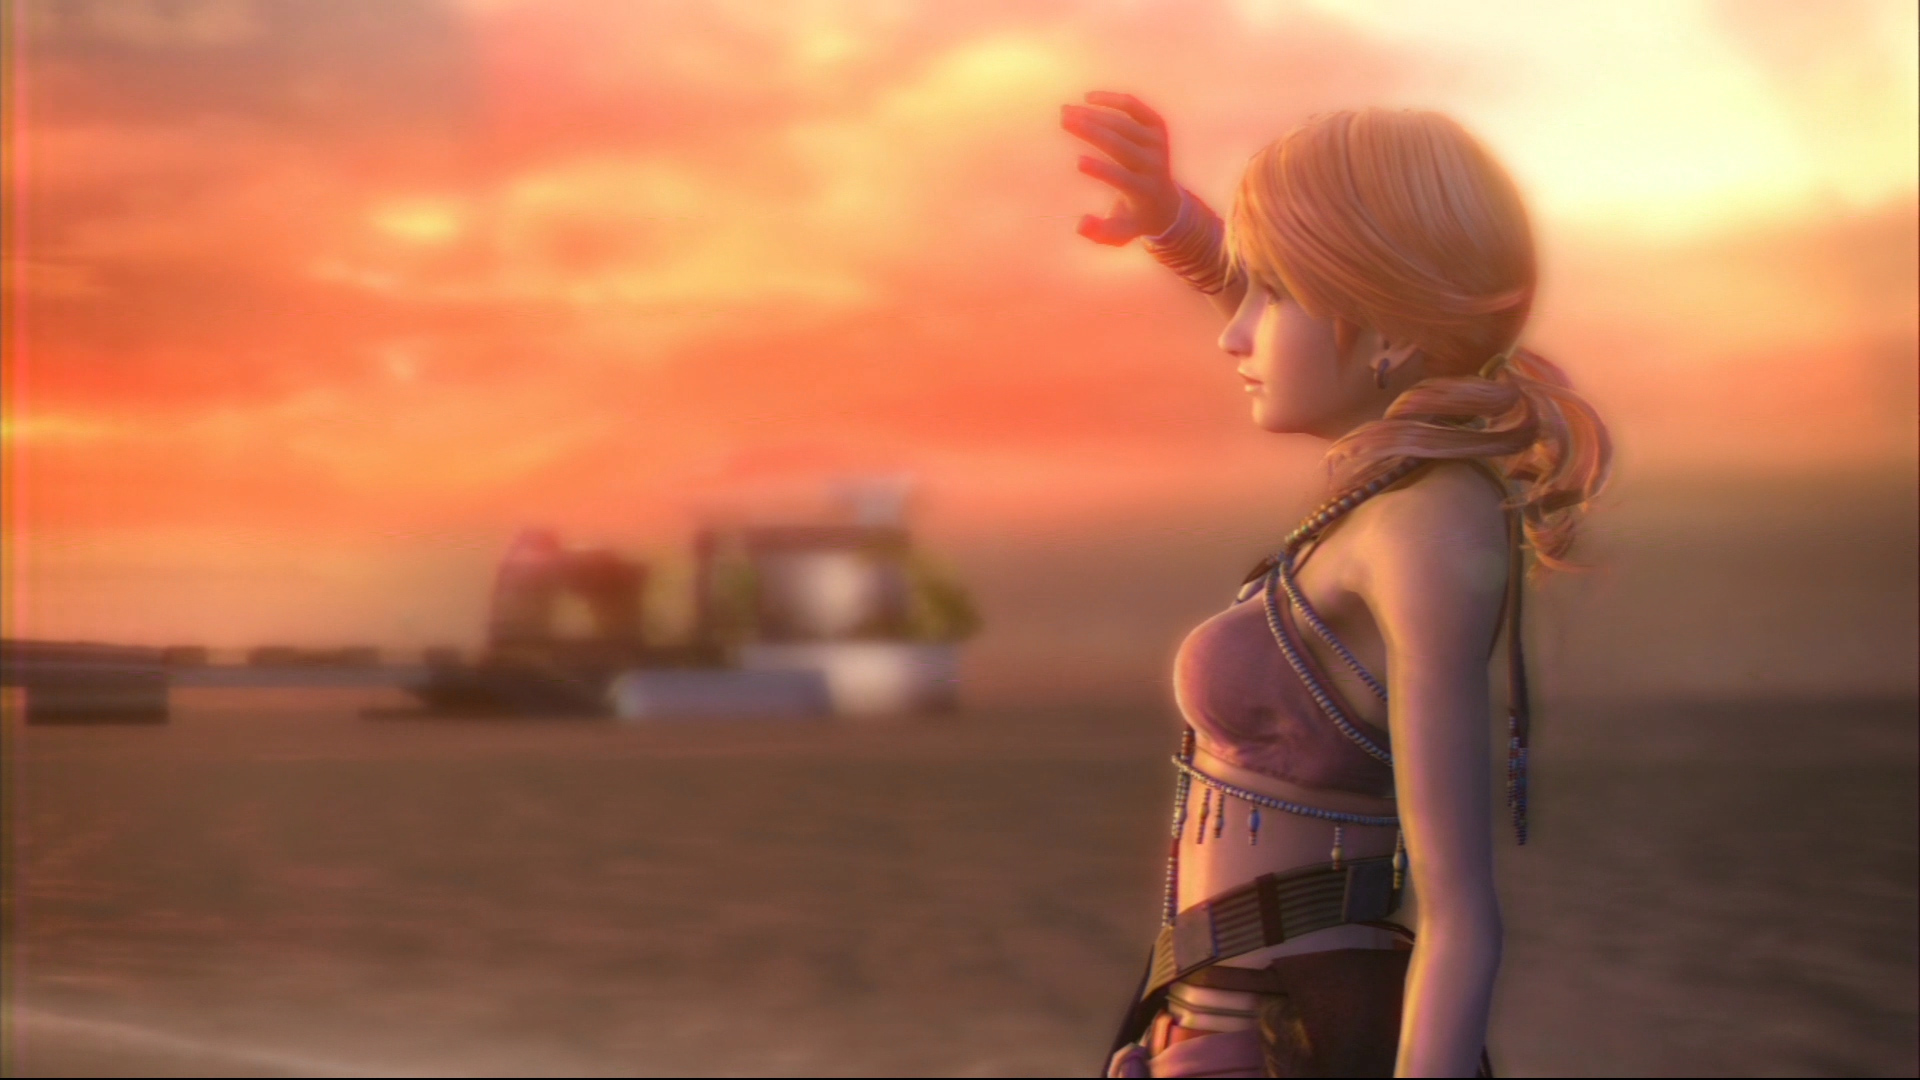 Final fantasy xiii serah sell out 2 3d - 1 part 9